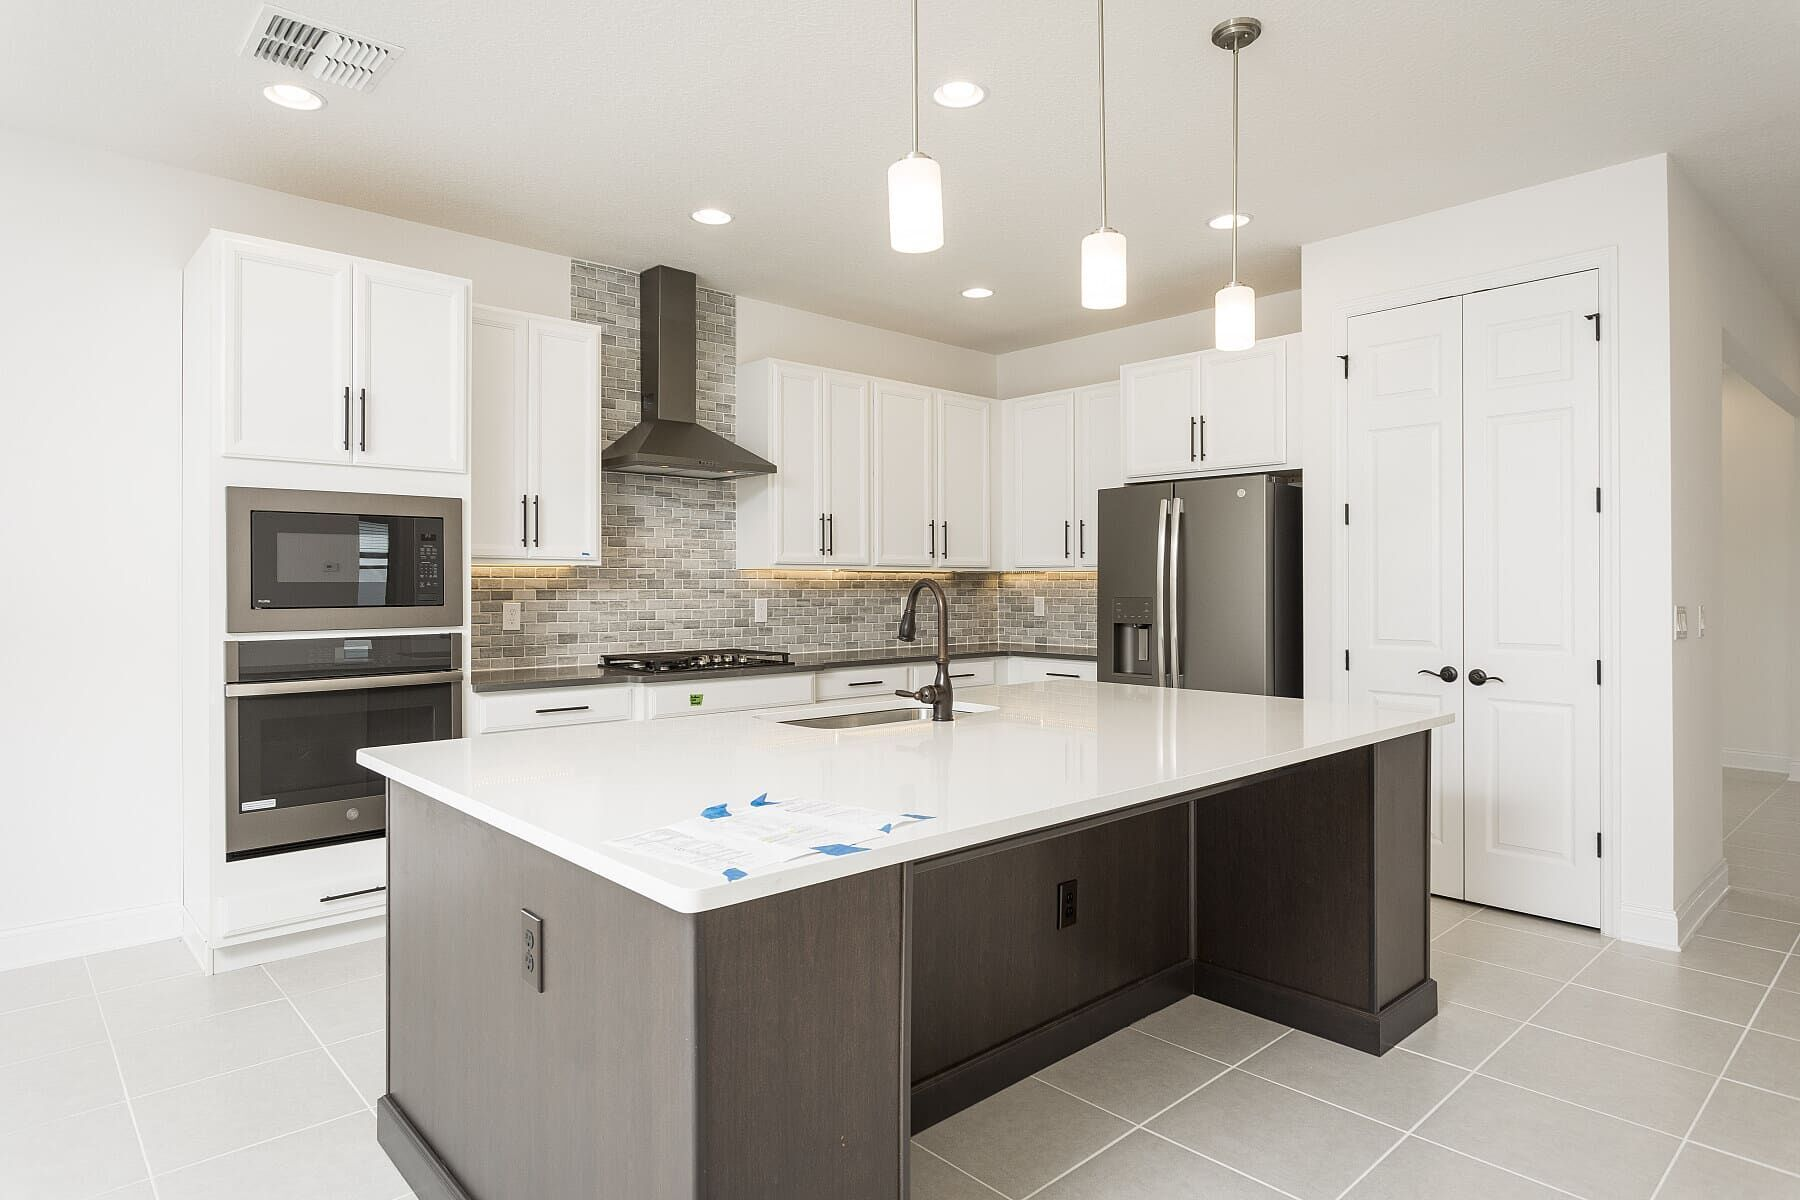 Kitchen featured in the Corina II By M/I Homes in Orlando, FL